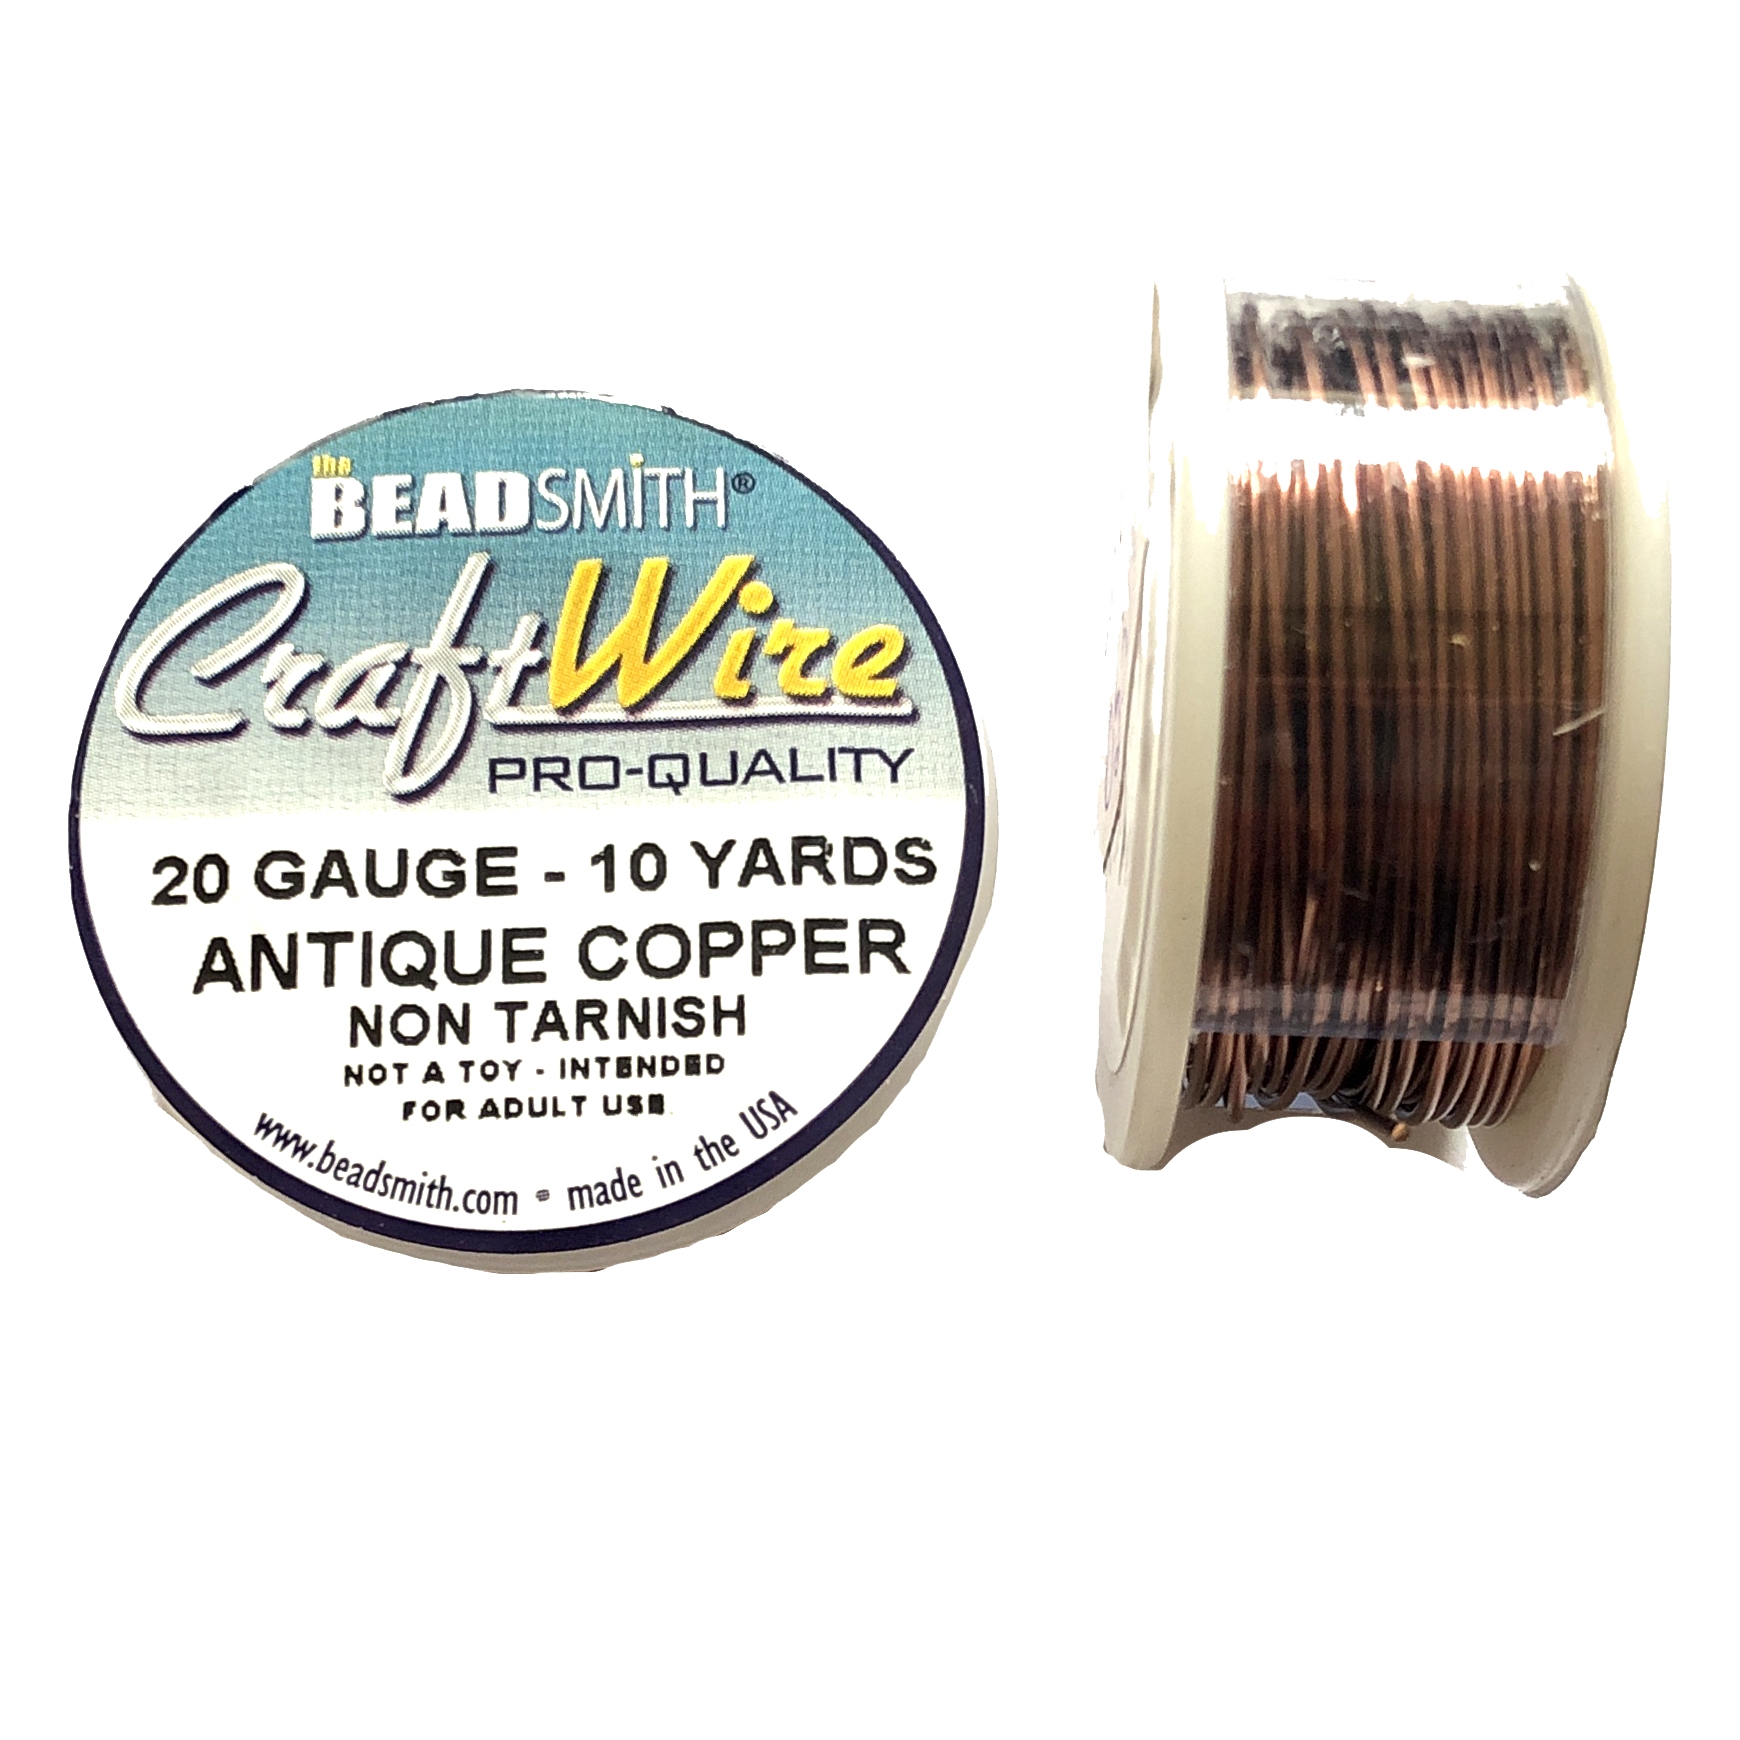 antique copper wire, jewelry wire, bead smith, 20 gauge, antique copper, wire, craft wire, non tarnish, 10 yards, wire jewelry, jewelry making, vintage supplies, jewelry supplies, bead smith antique copper wire, B'sue Boutiques, pro- quality, spool, 05387